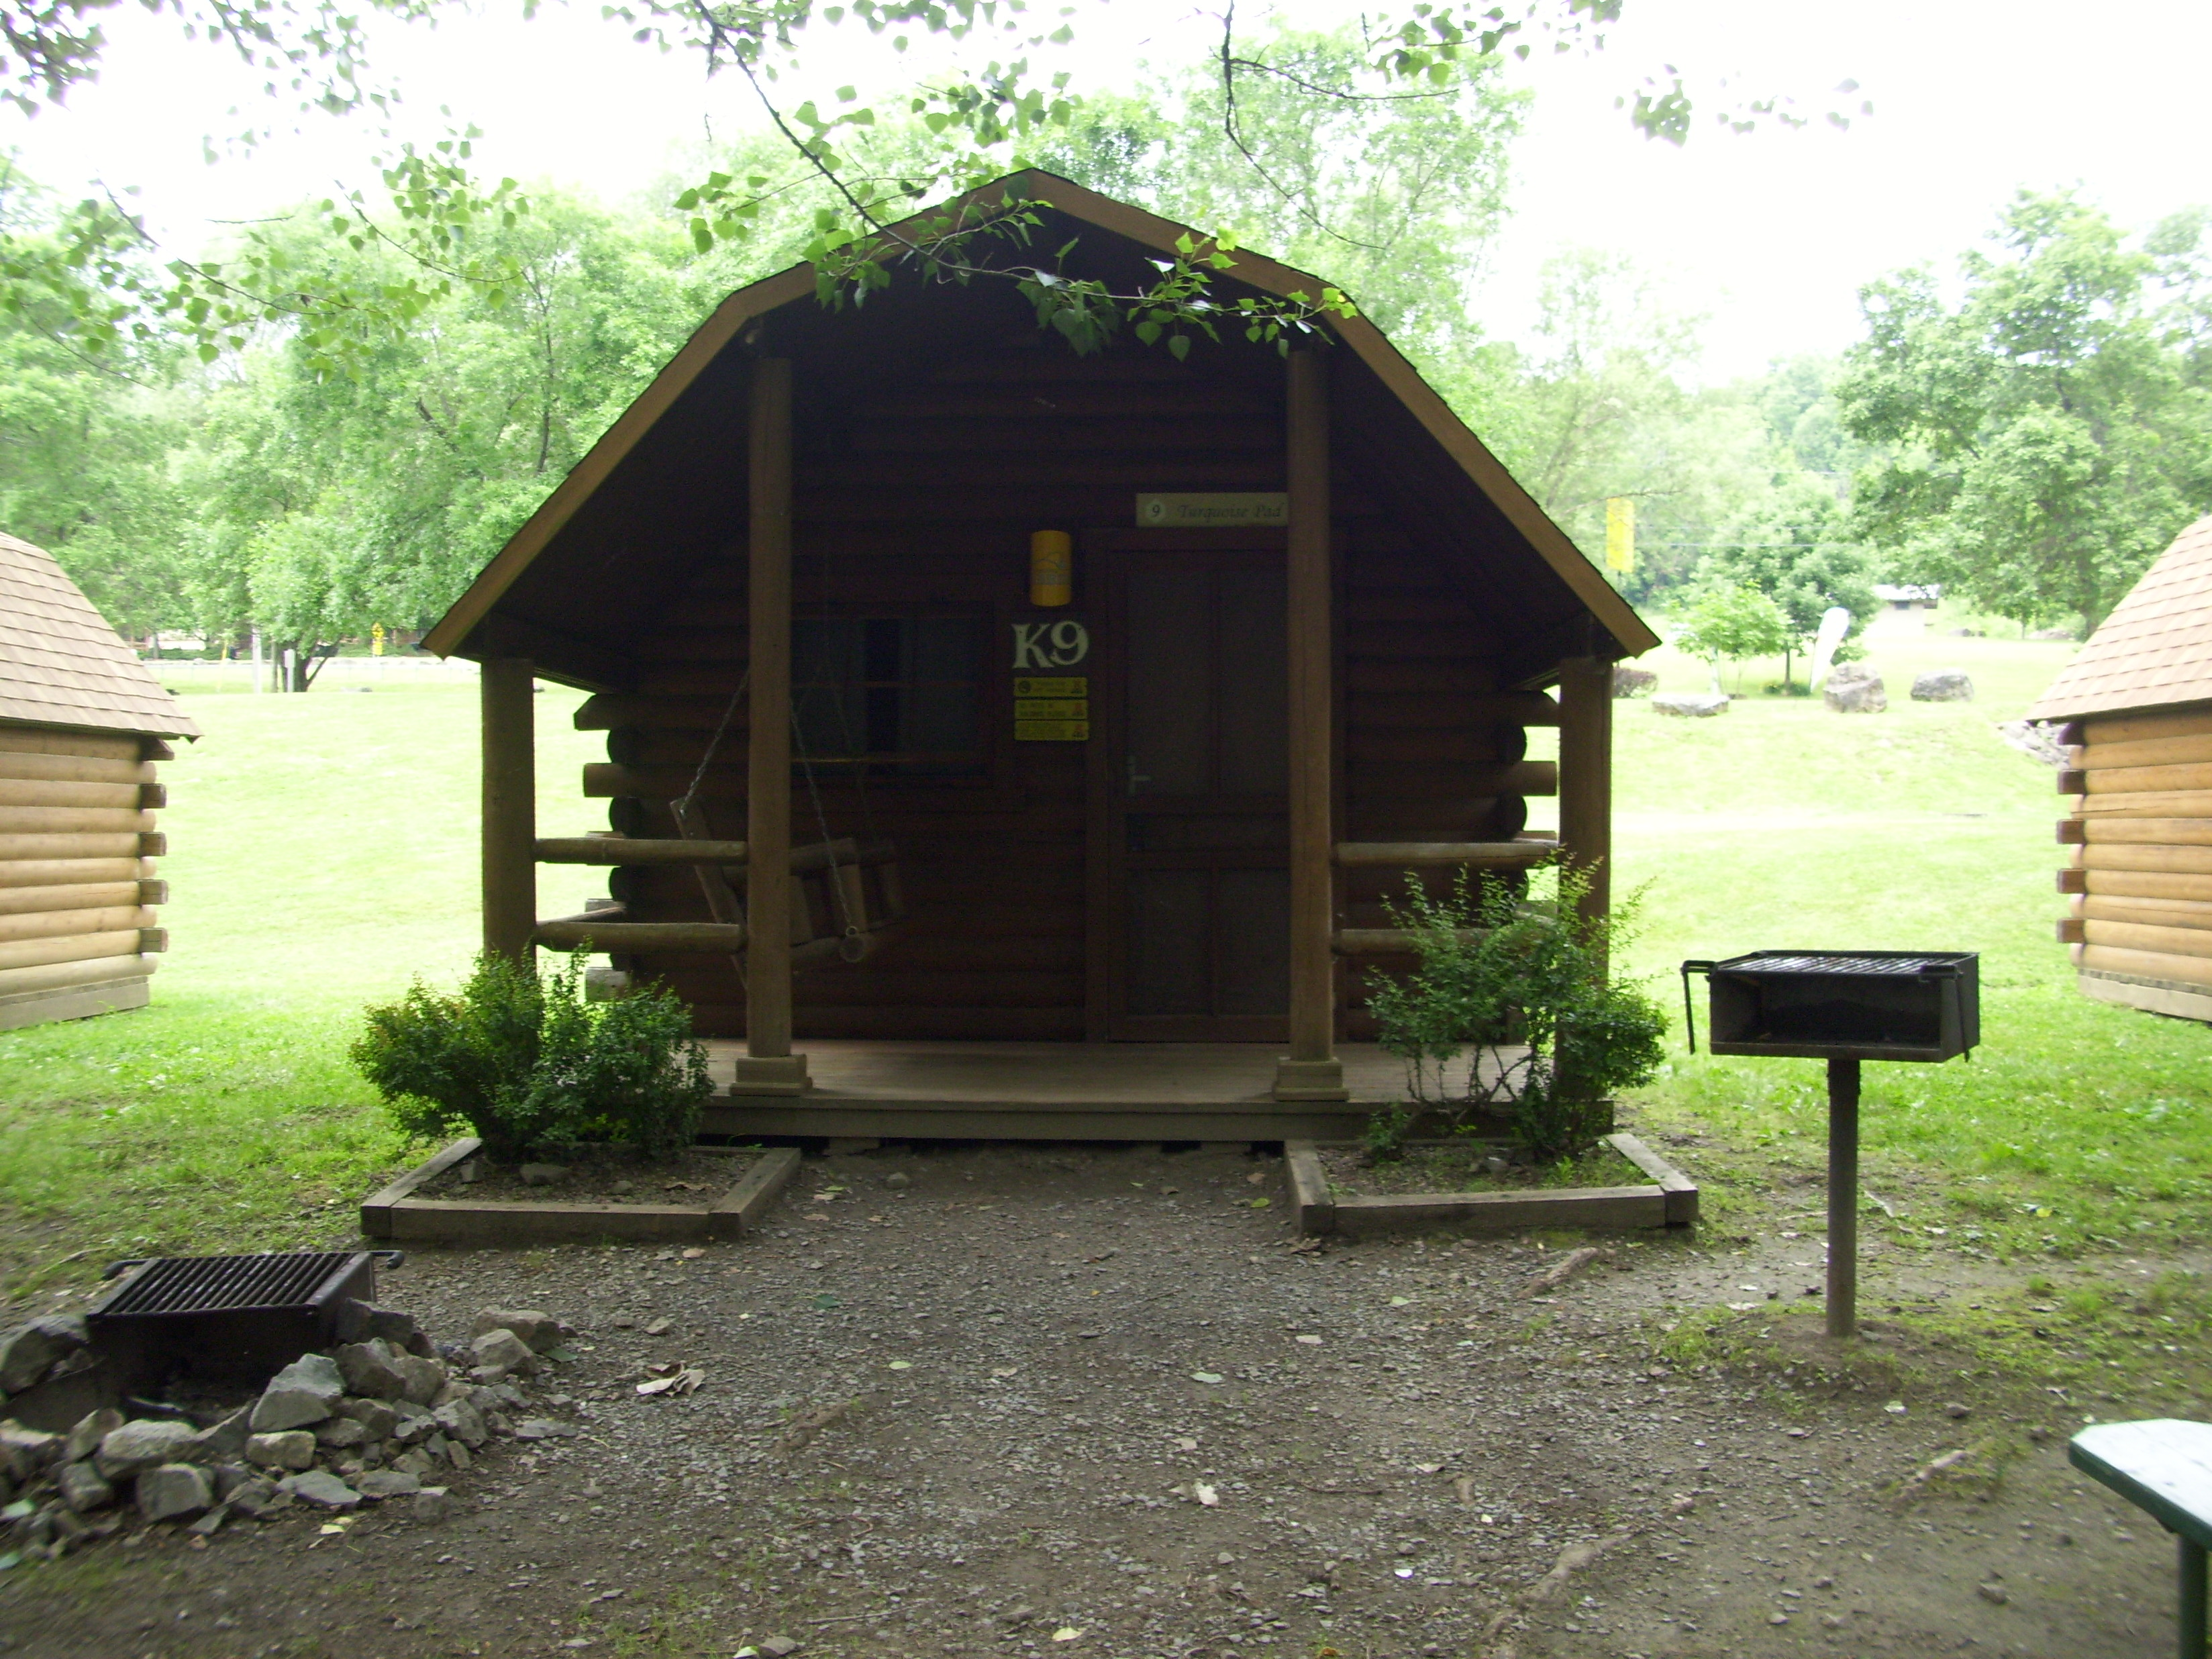 herkimer, new york lodging | herkimer diamond koa